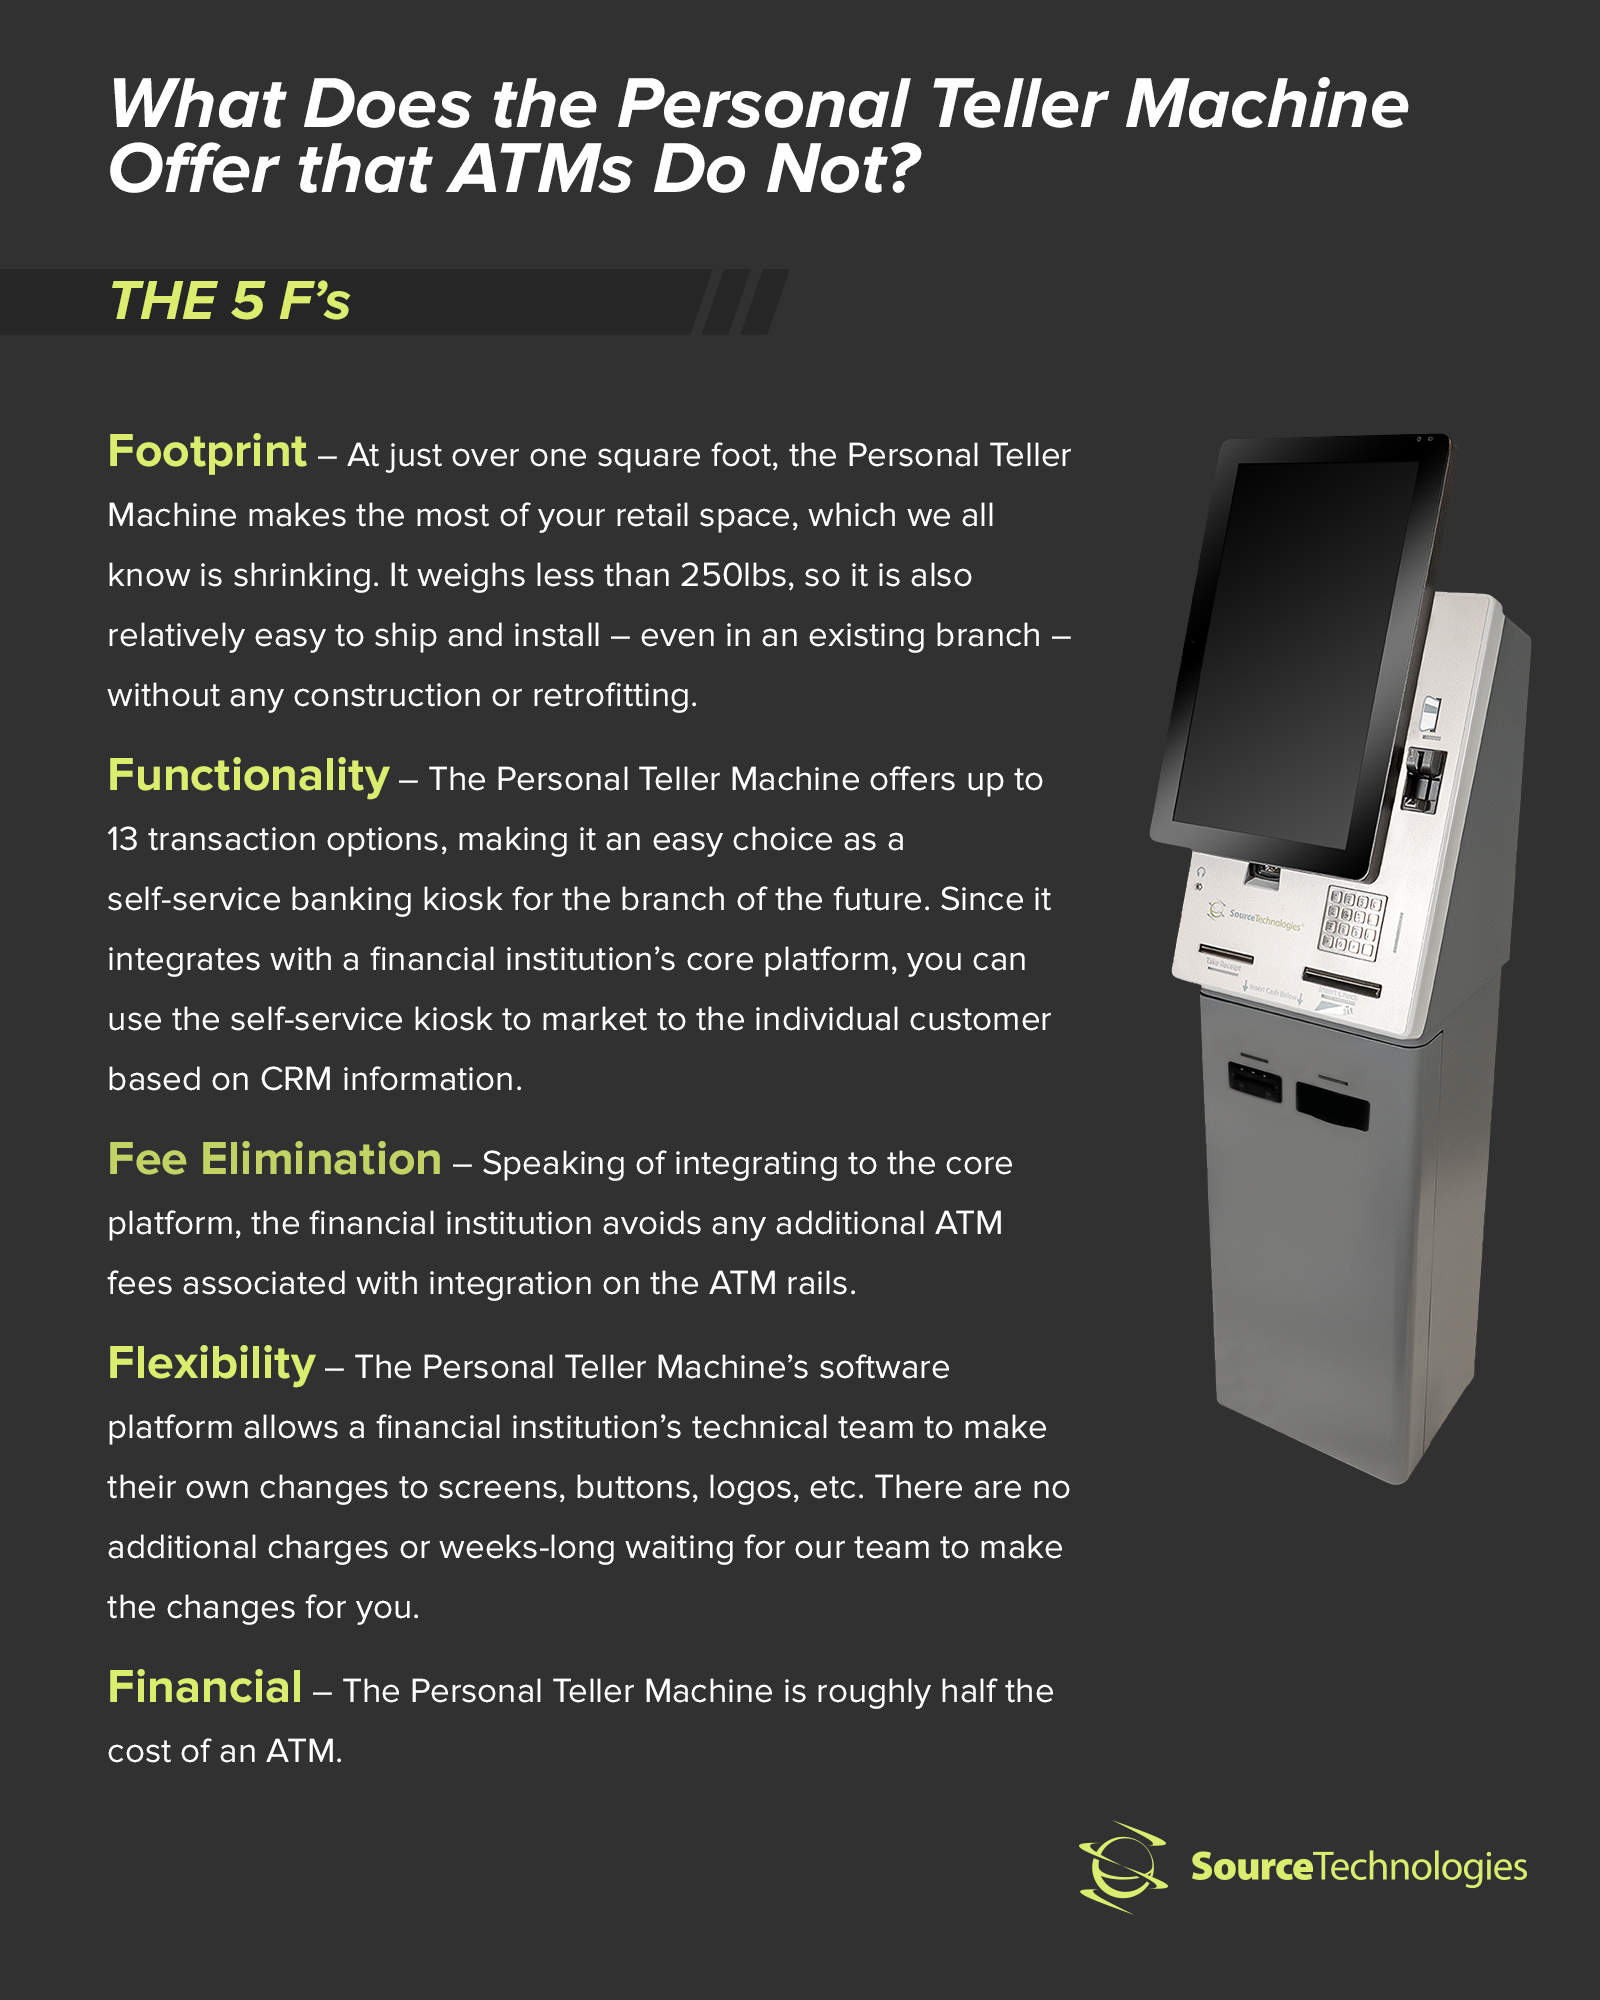 personal-teller-machine-and-atms